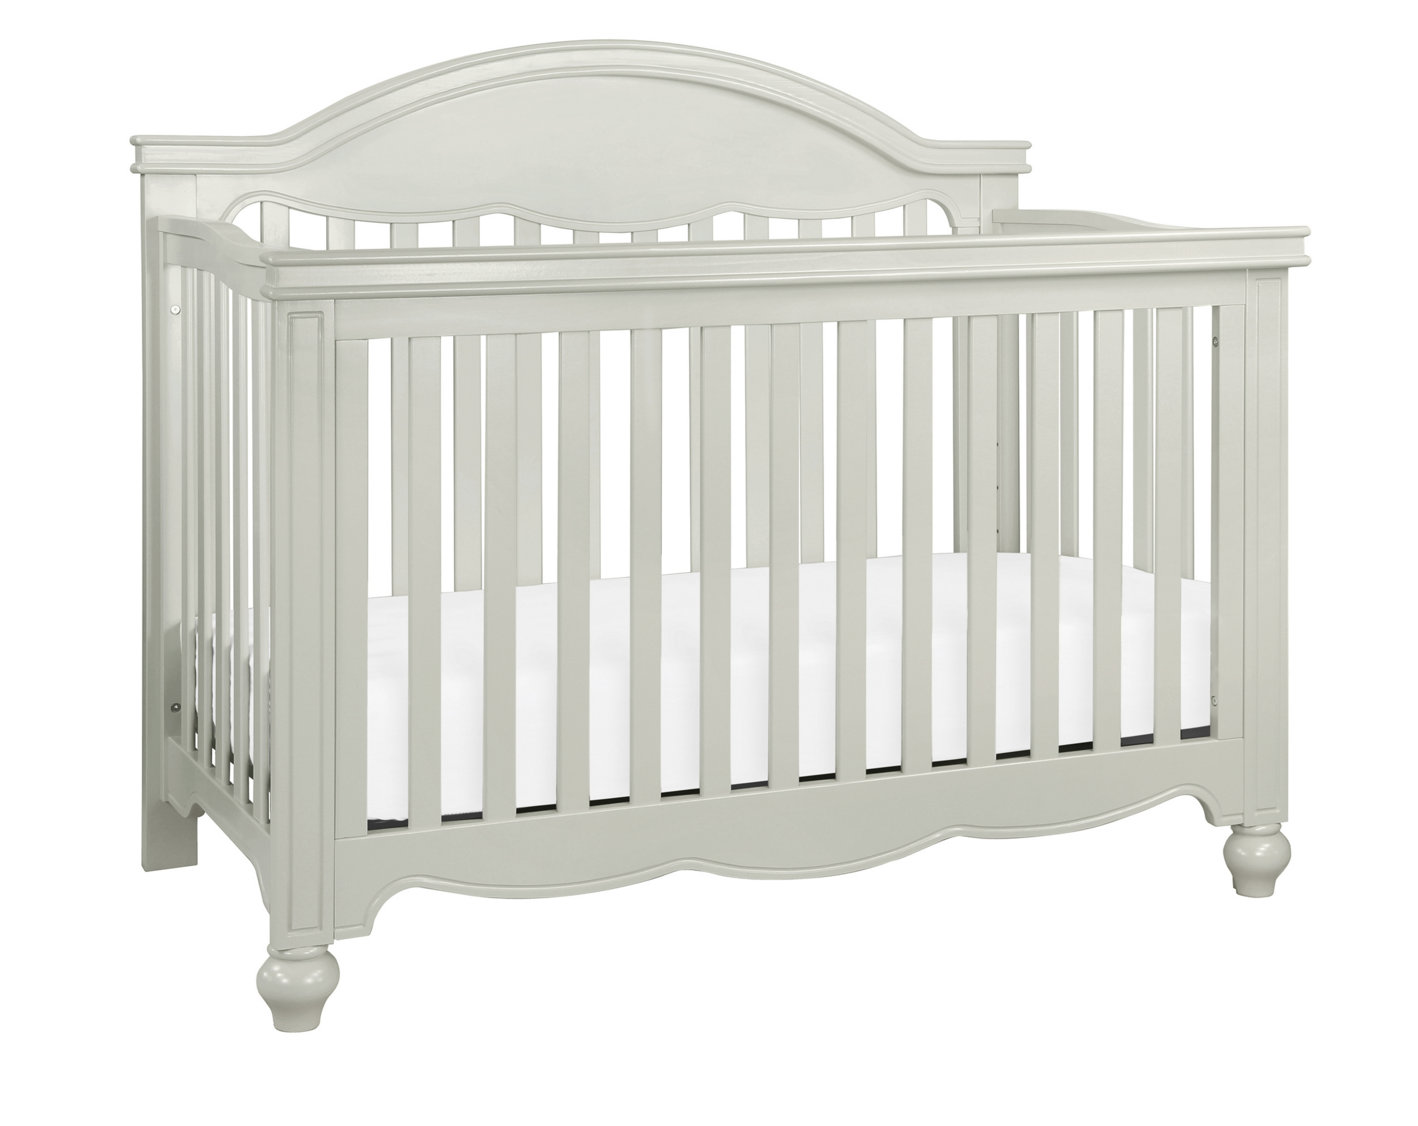 mdb etienne 4 in 1 convertible crib